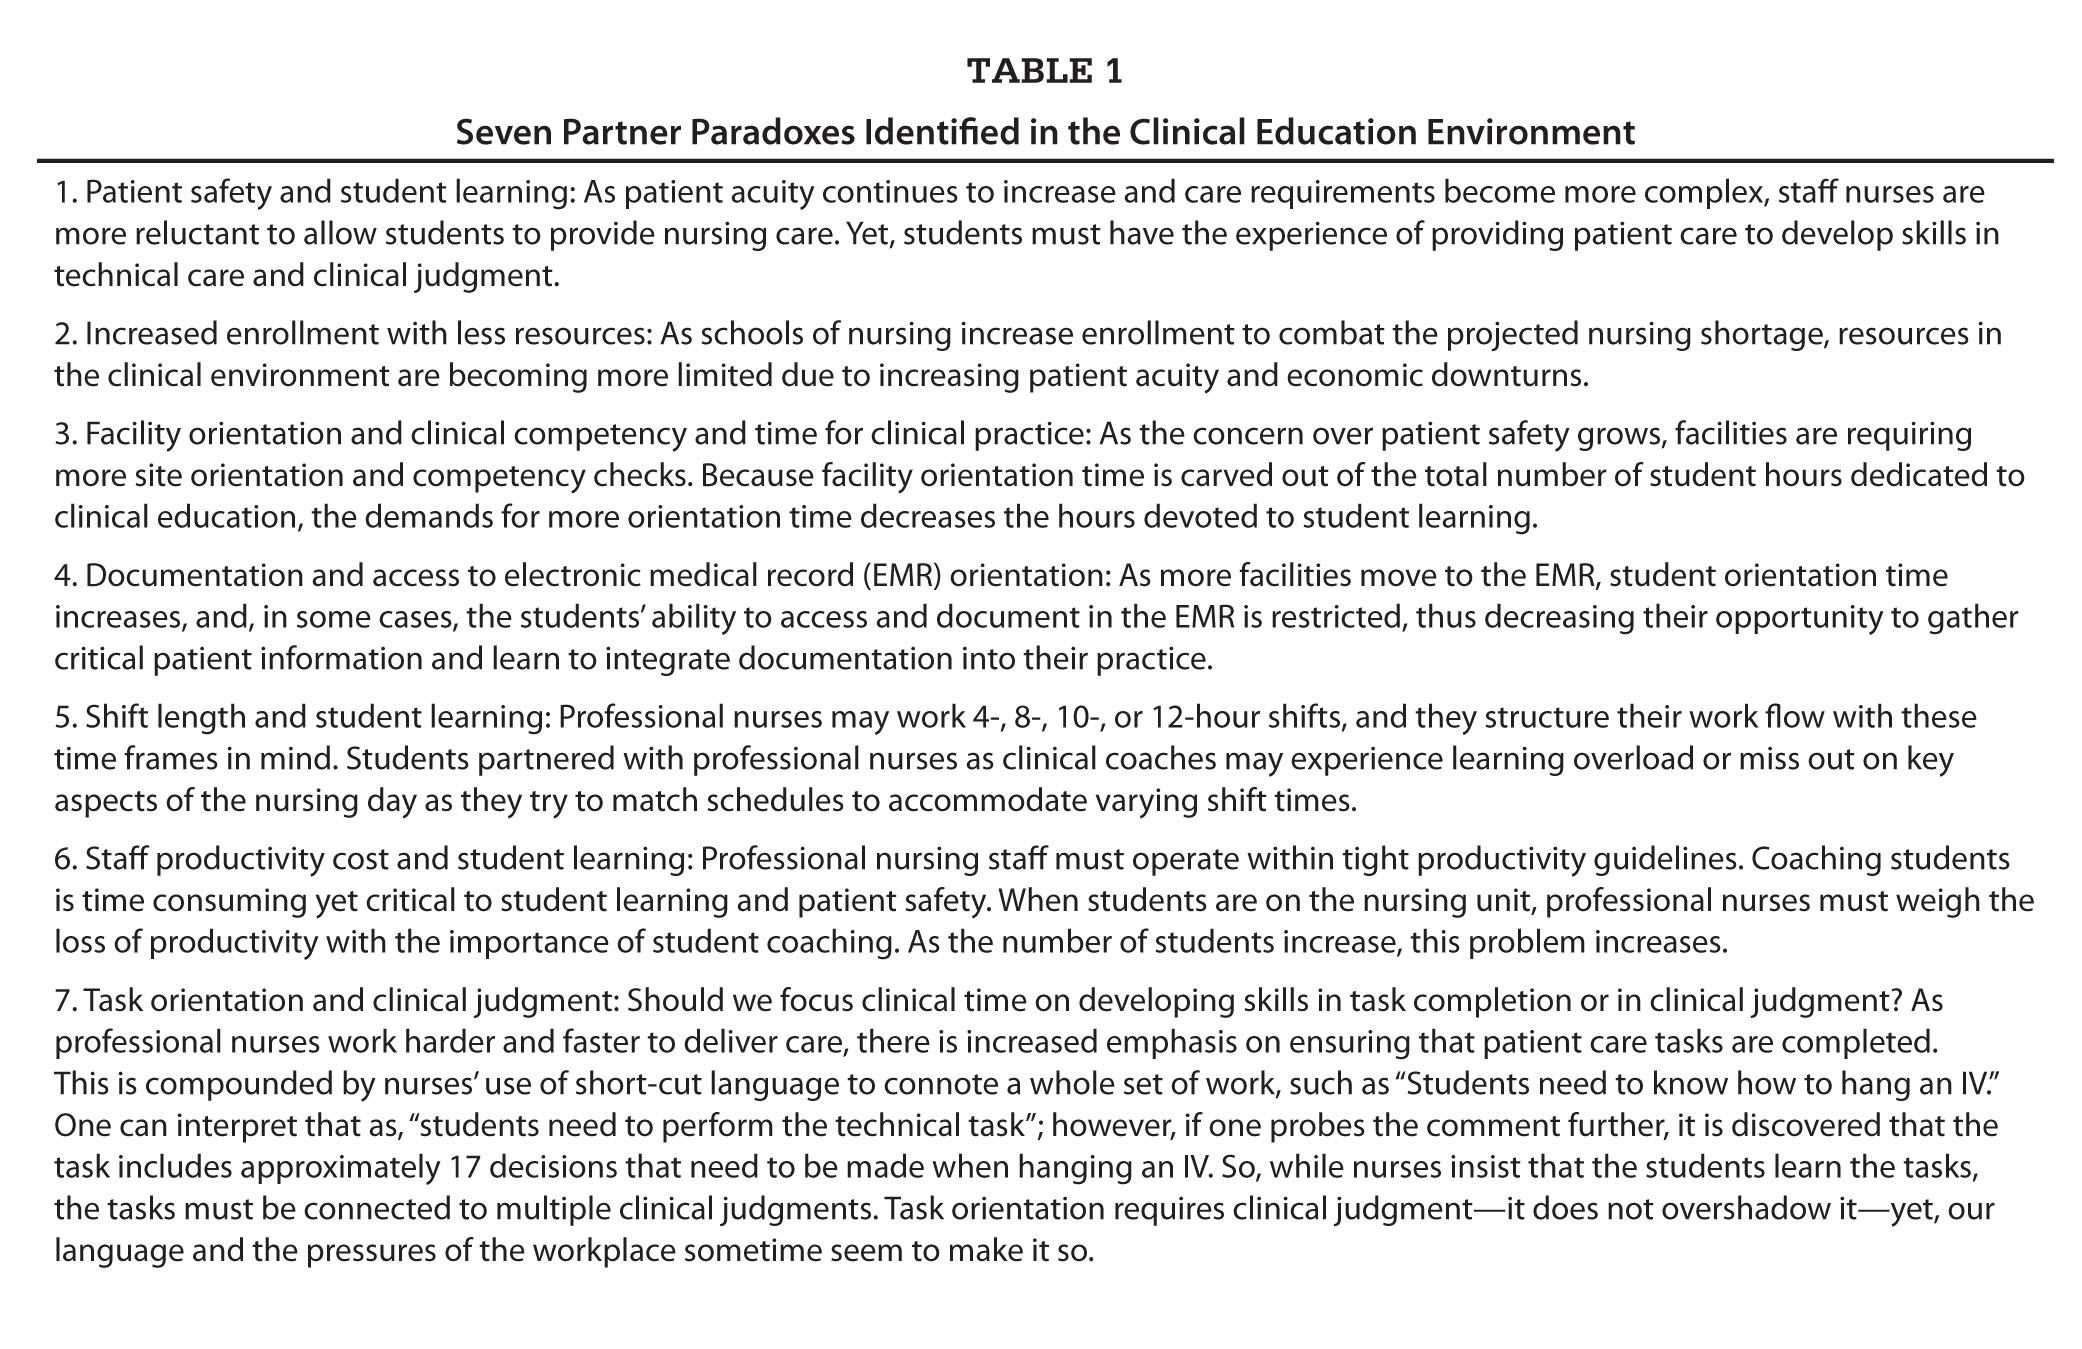 Seven Partner Paradoxes Identified in the Clinical Education Environment